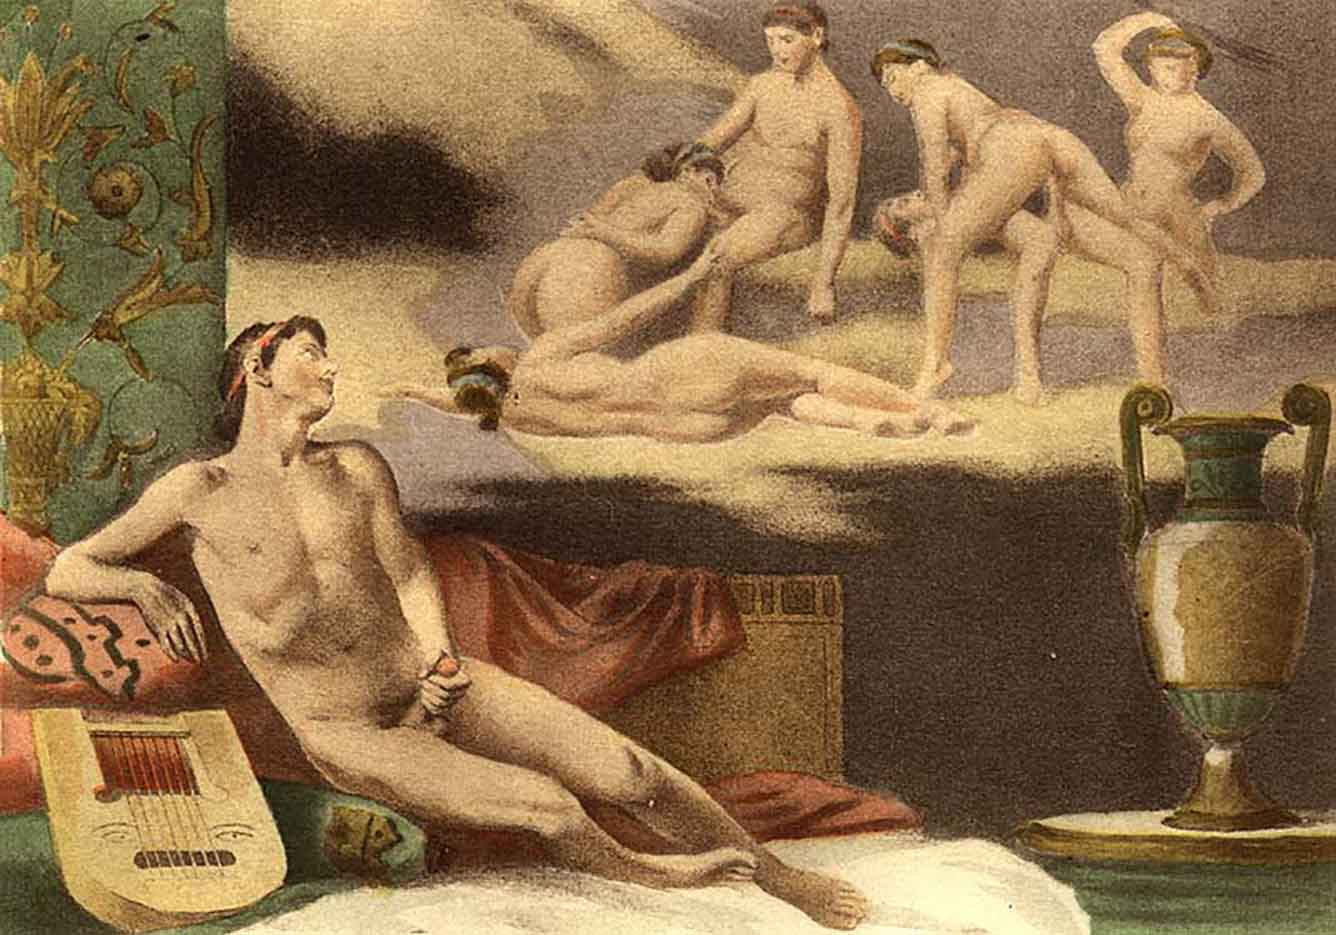 The Bizarre Sexual Story Of Onan In The Old Testament